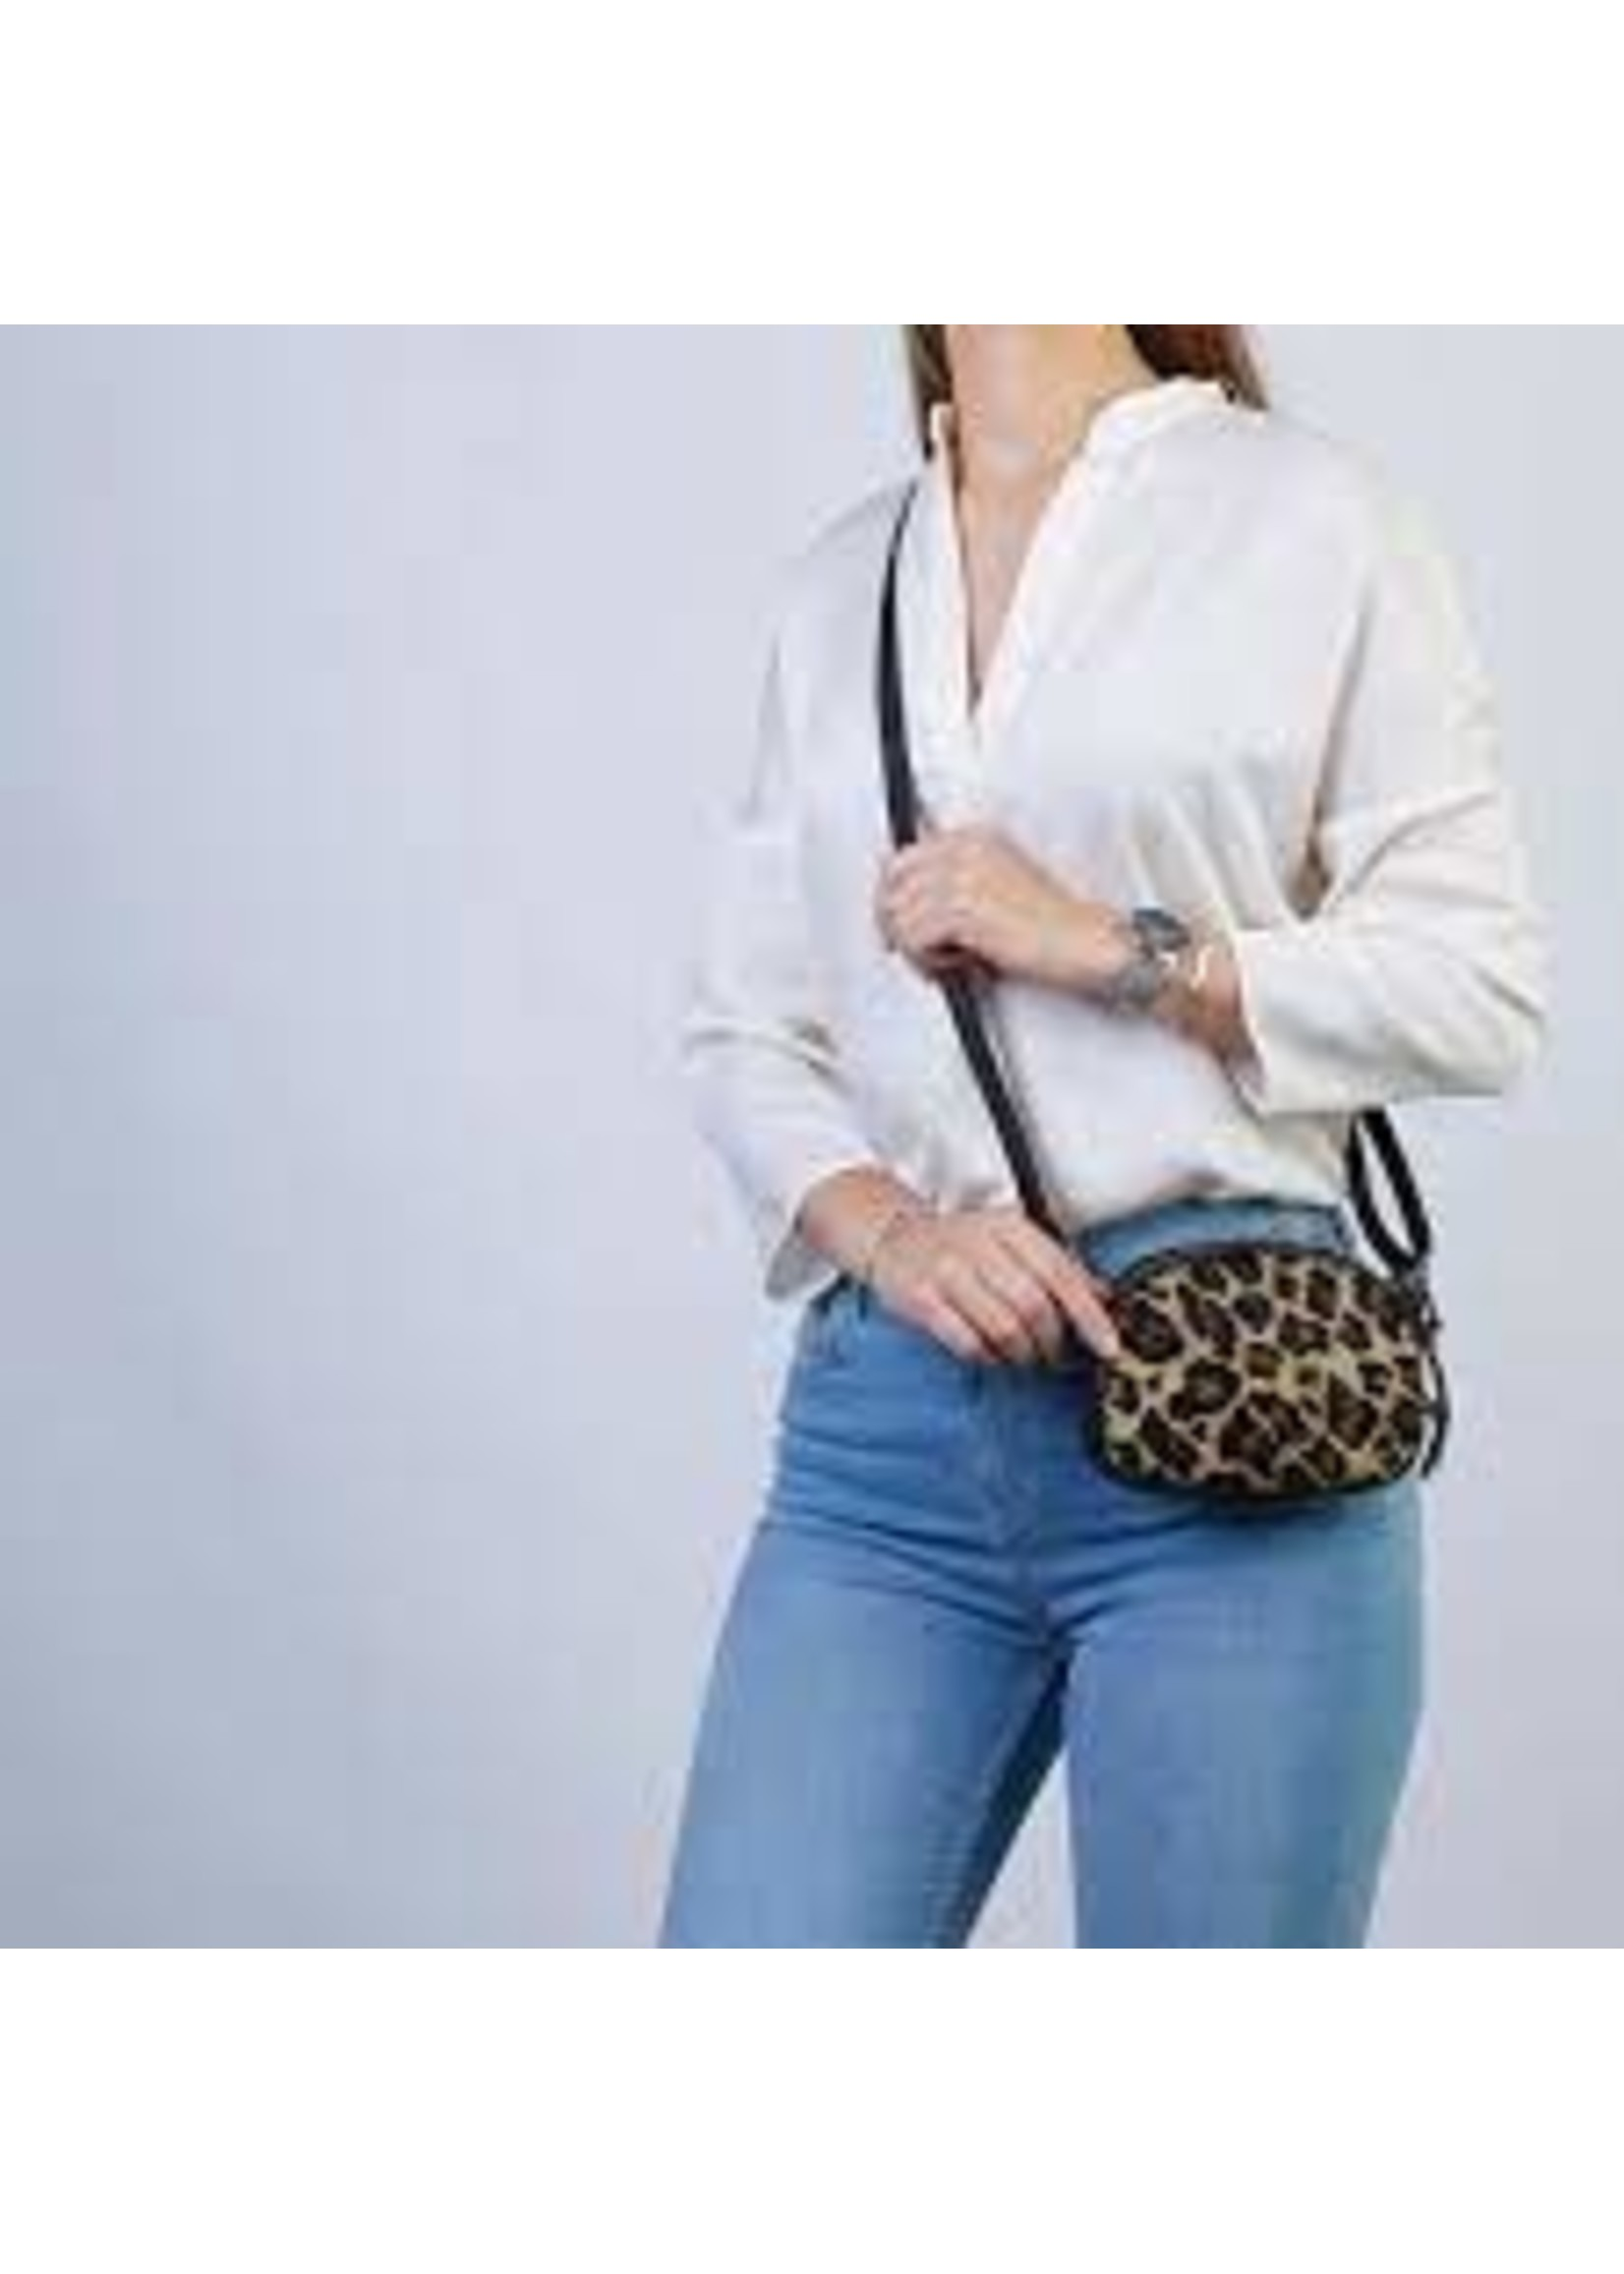 Chabo Bags Chabo Bags Skin Panther Crossbody - beige,bruin